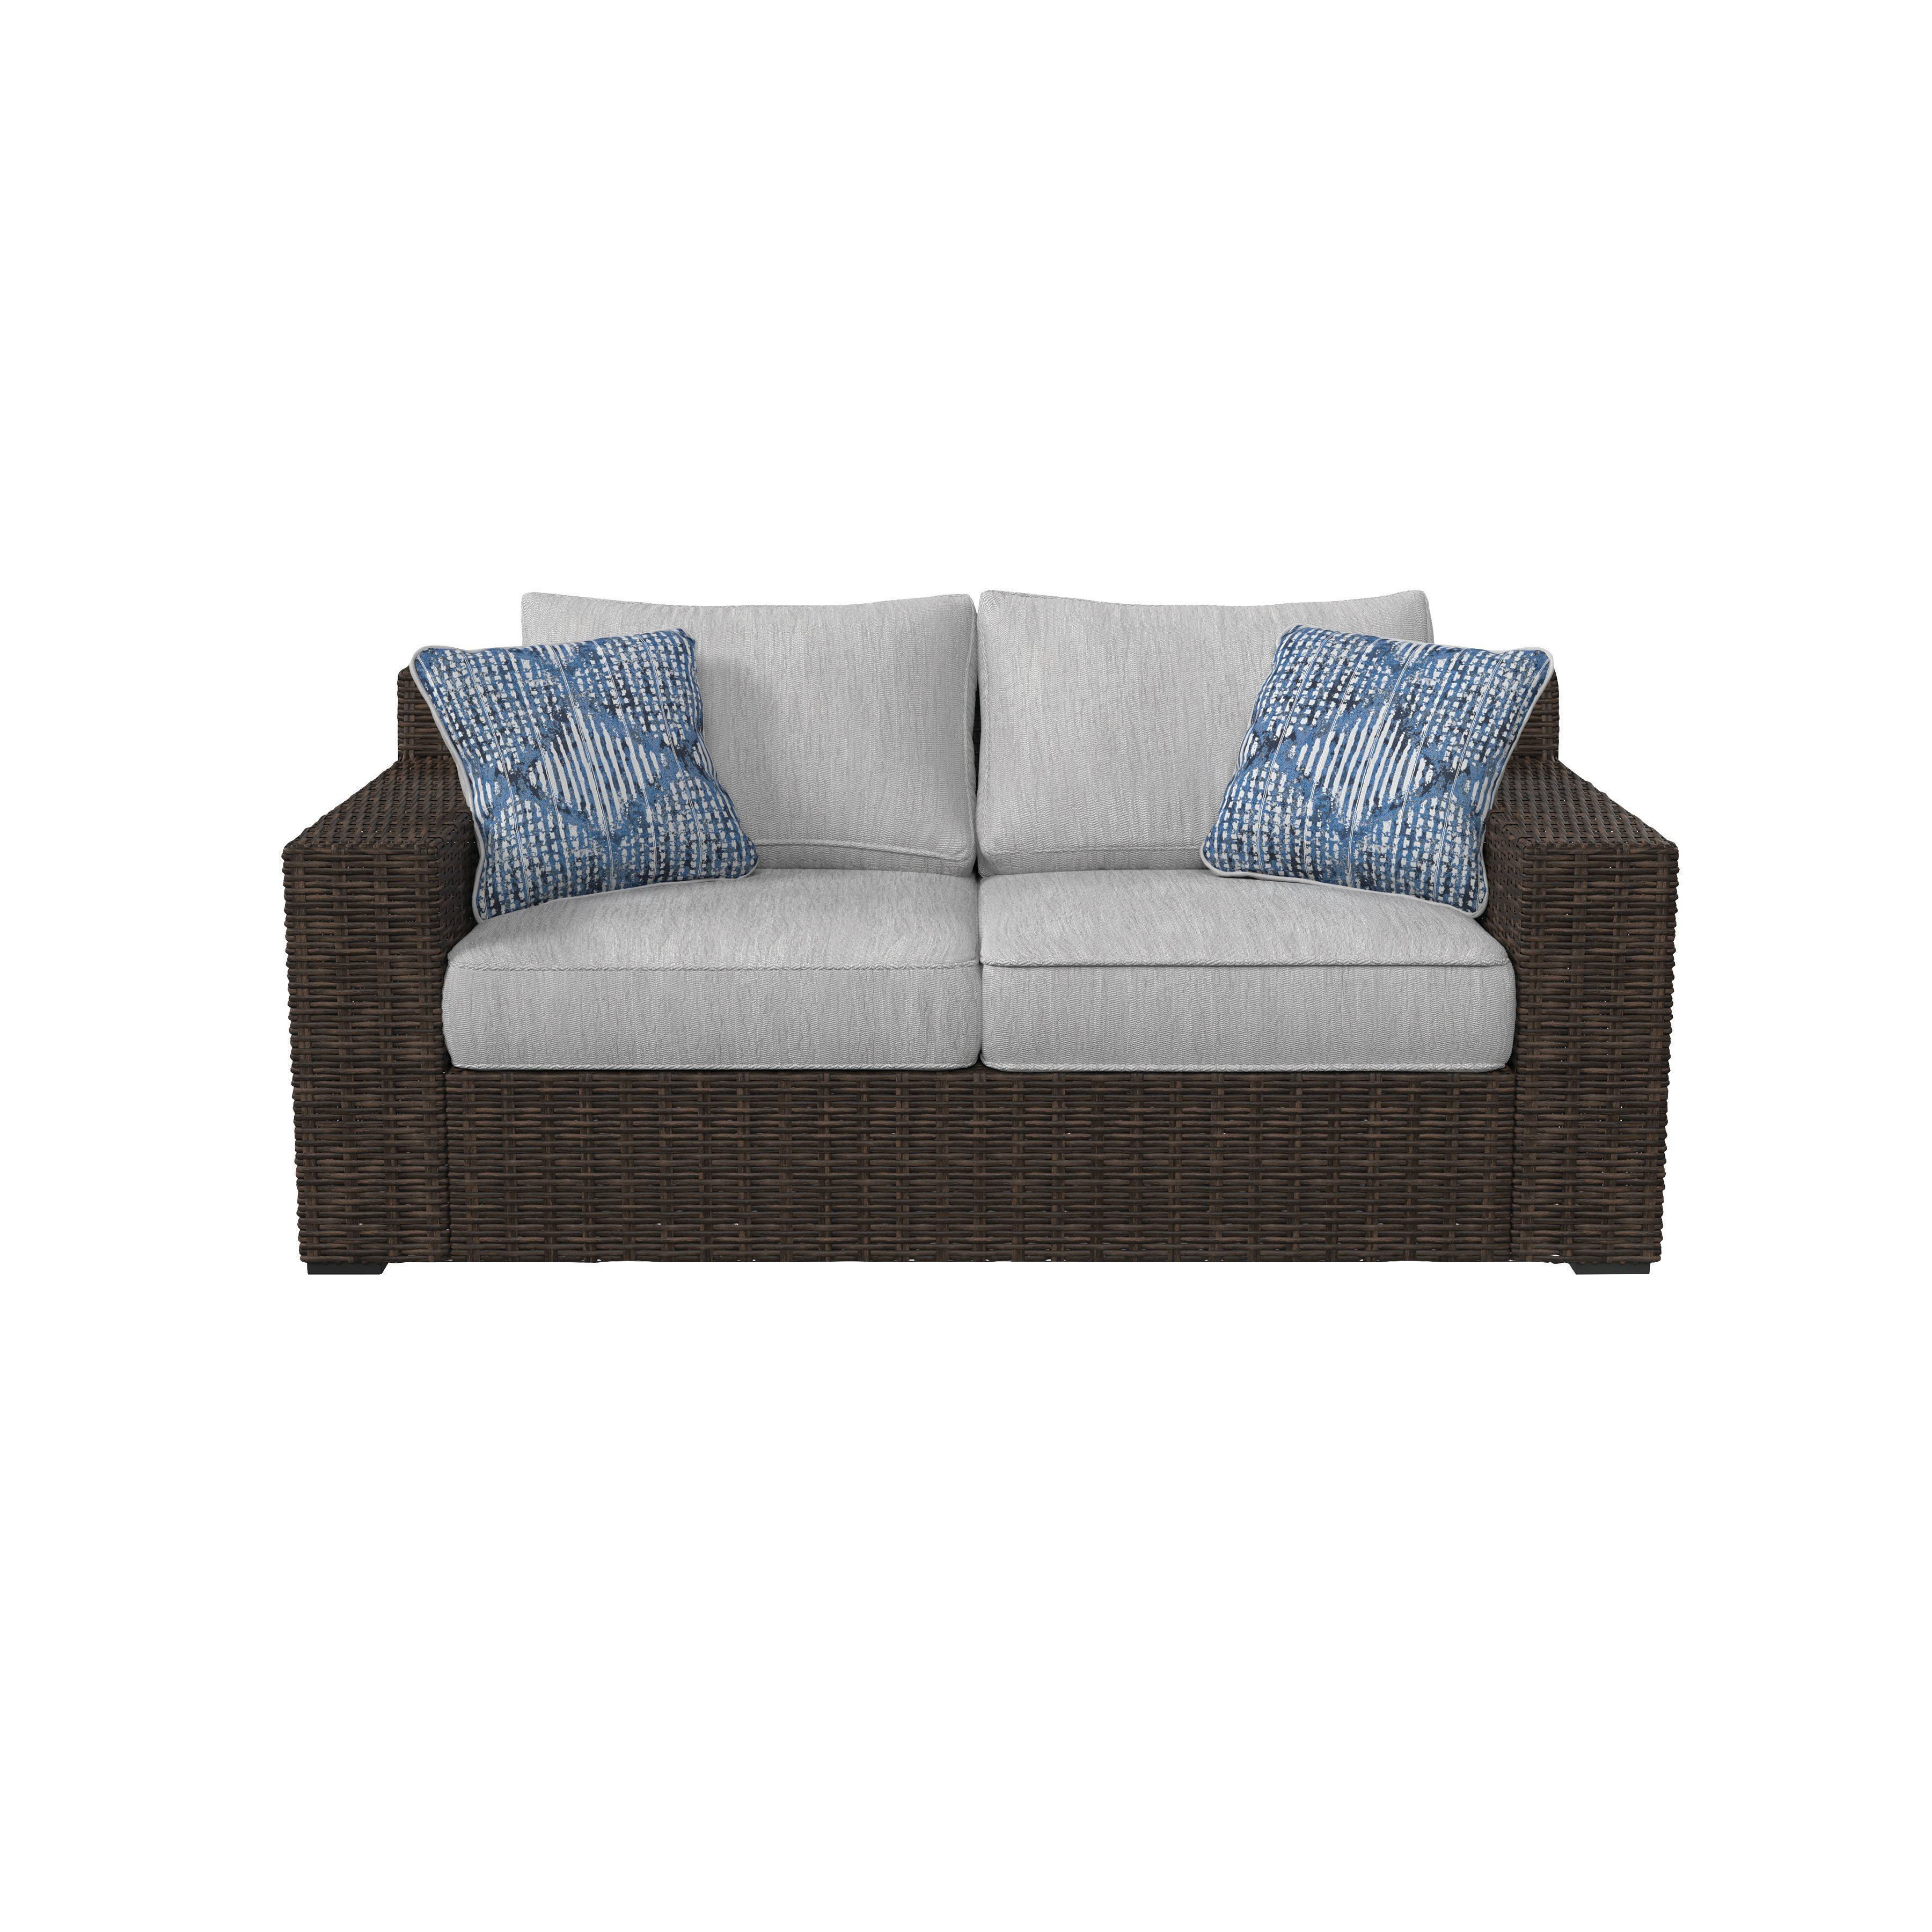 Bristol Loveseats With Cushions Pertaining To Most Up To Date Oreland Loveseat With Cushions (View 3 of 20)